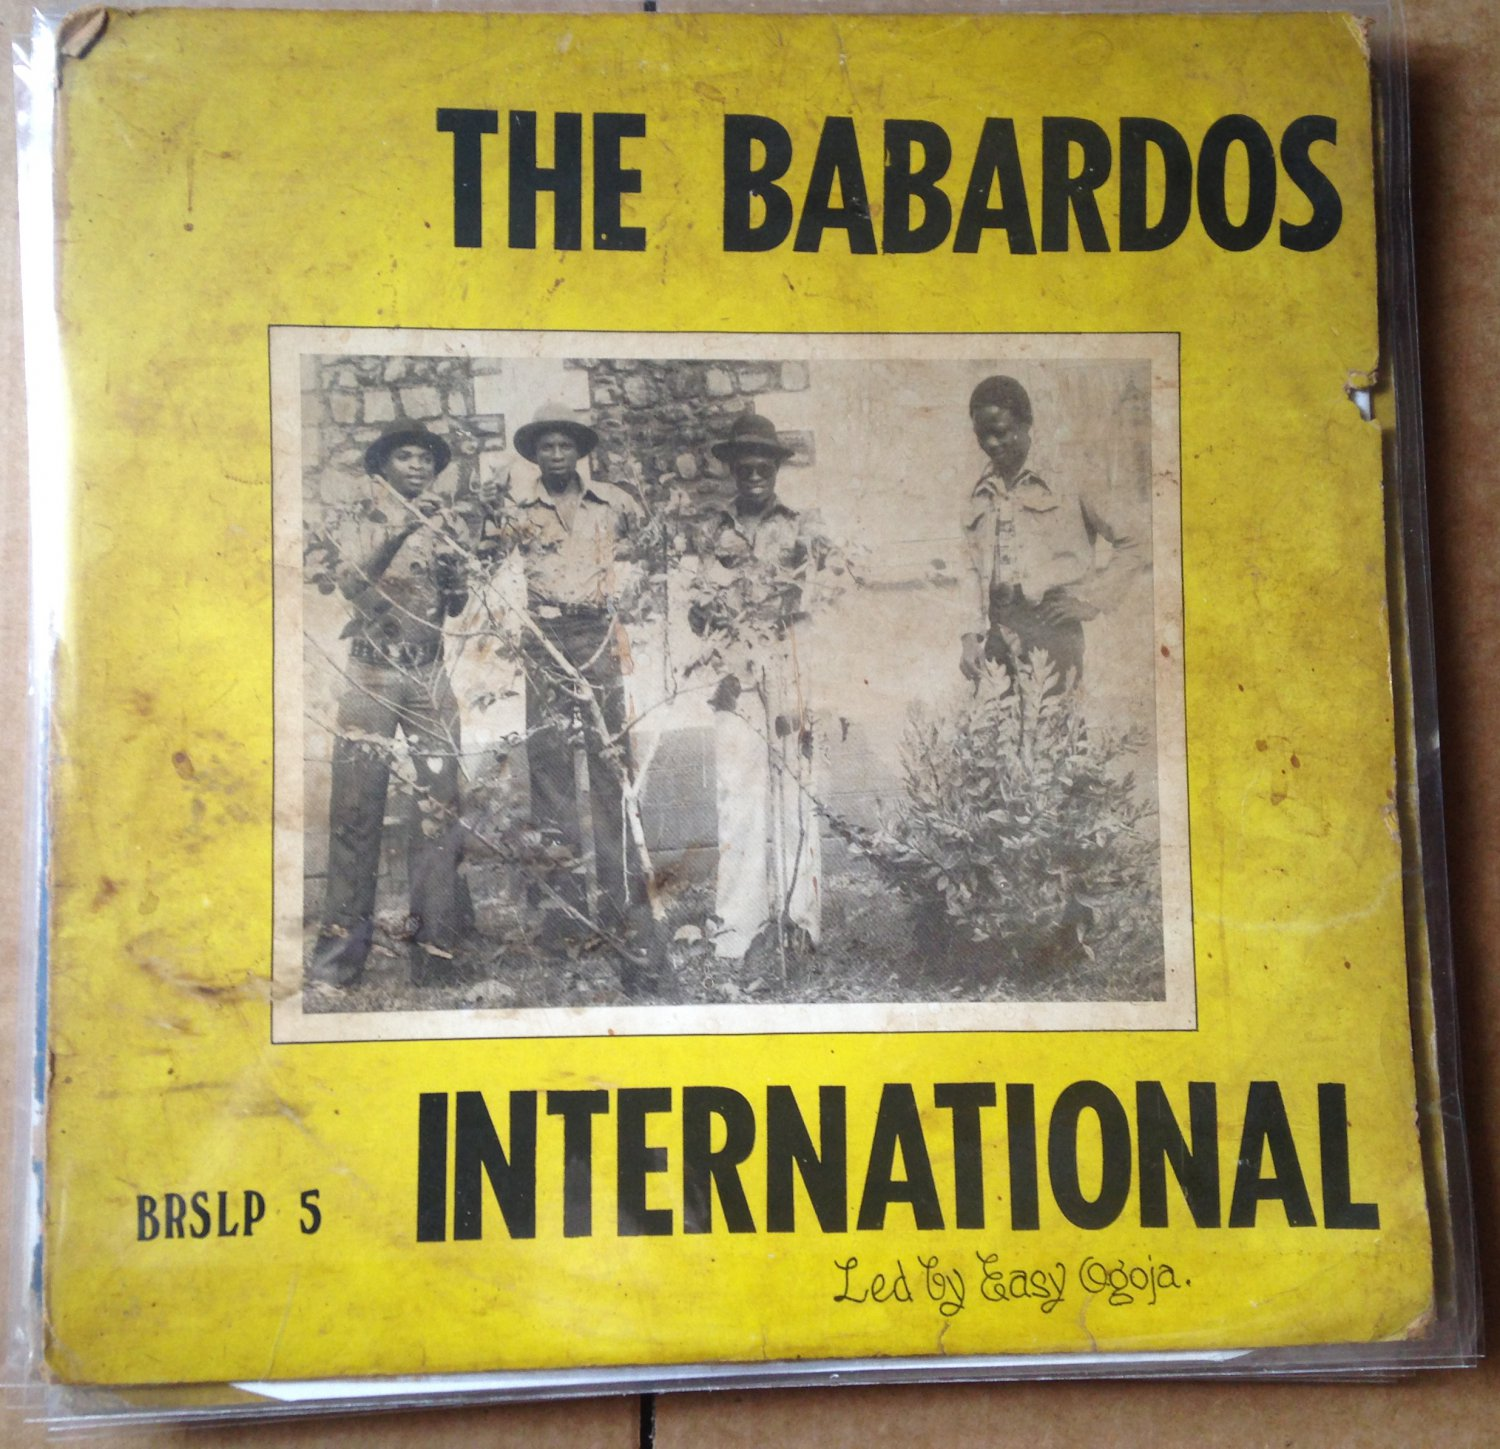 THE BARBADOS INTERNATIONAL LP iyi uku NIGERIA mp3 LISTEN